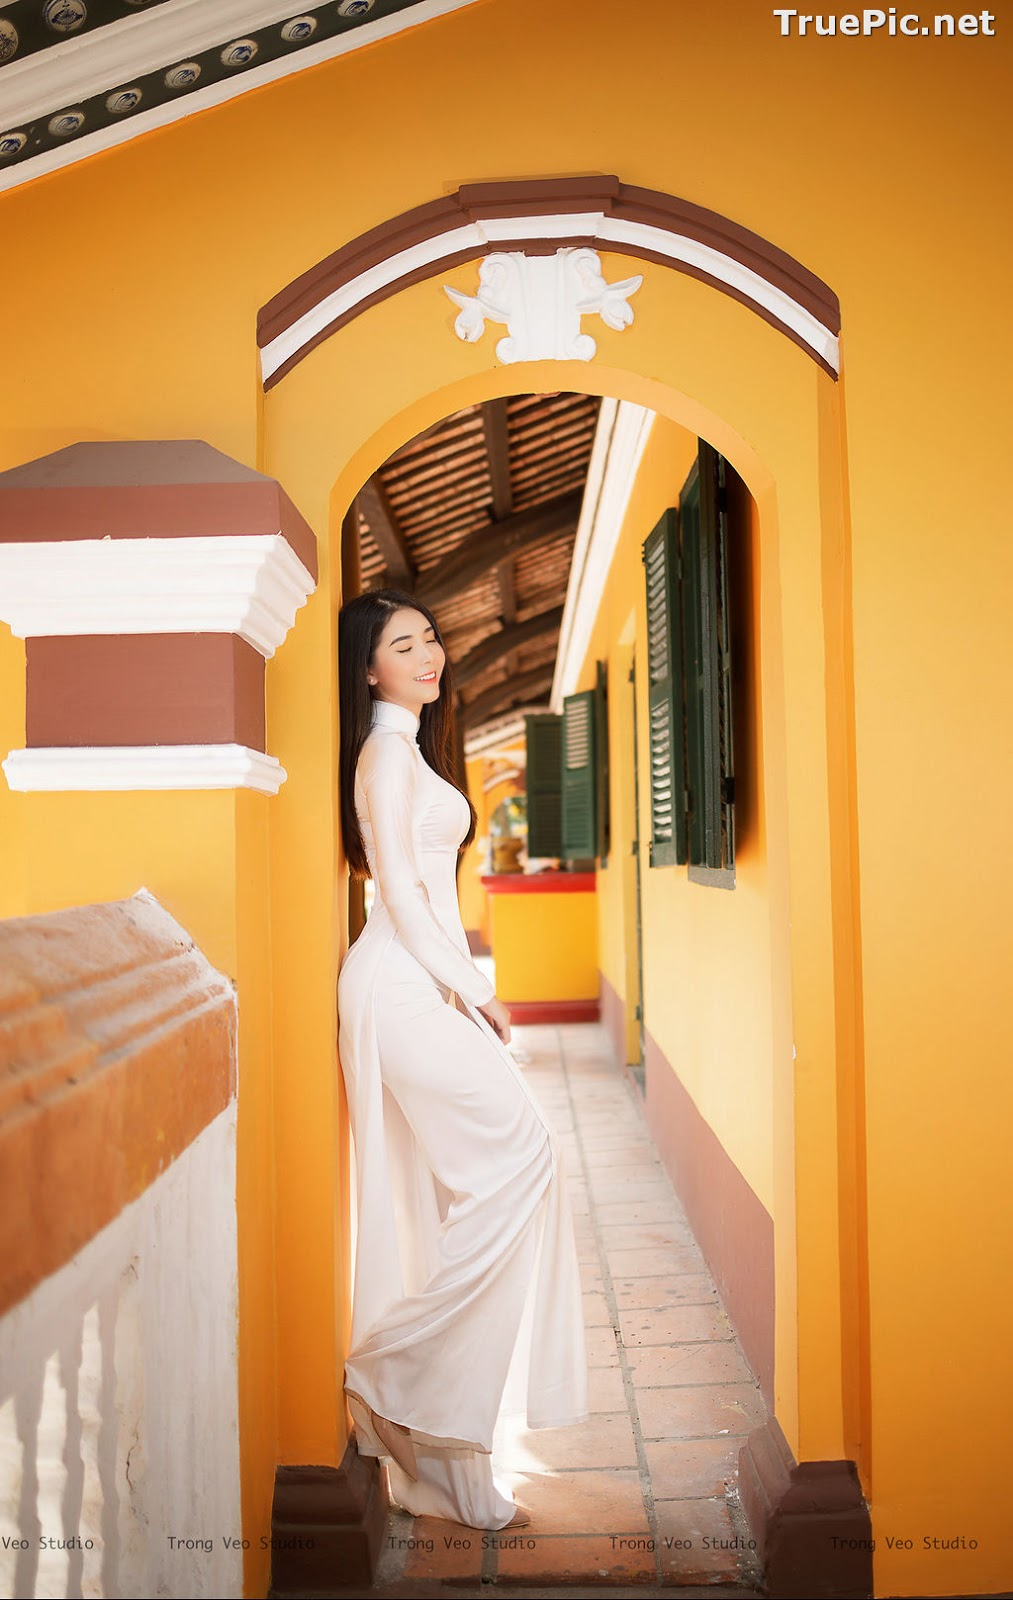 Image The Beauty of Vietnamese Girls with Traditional Dress (Ao Dai) #2 - TruePic.net - Picture-2